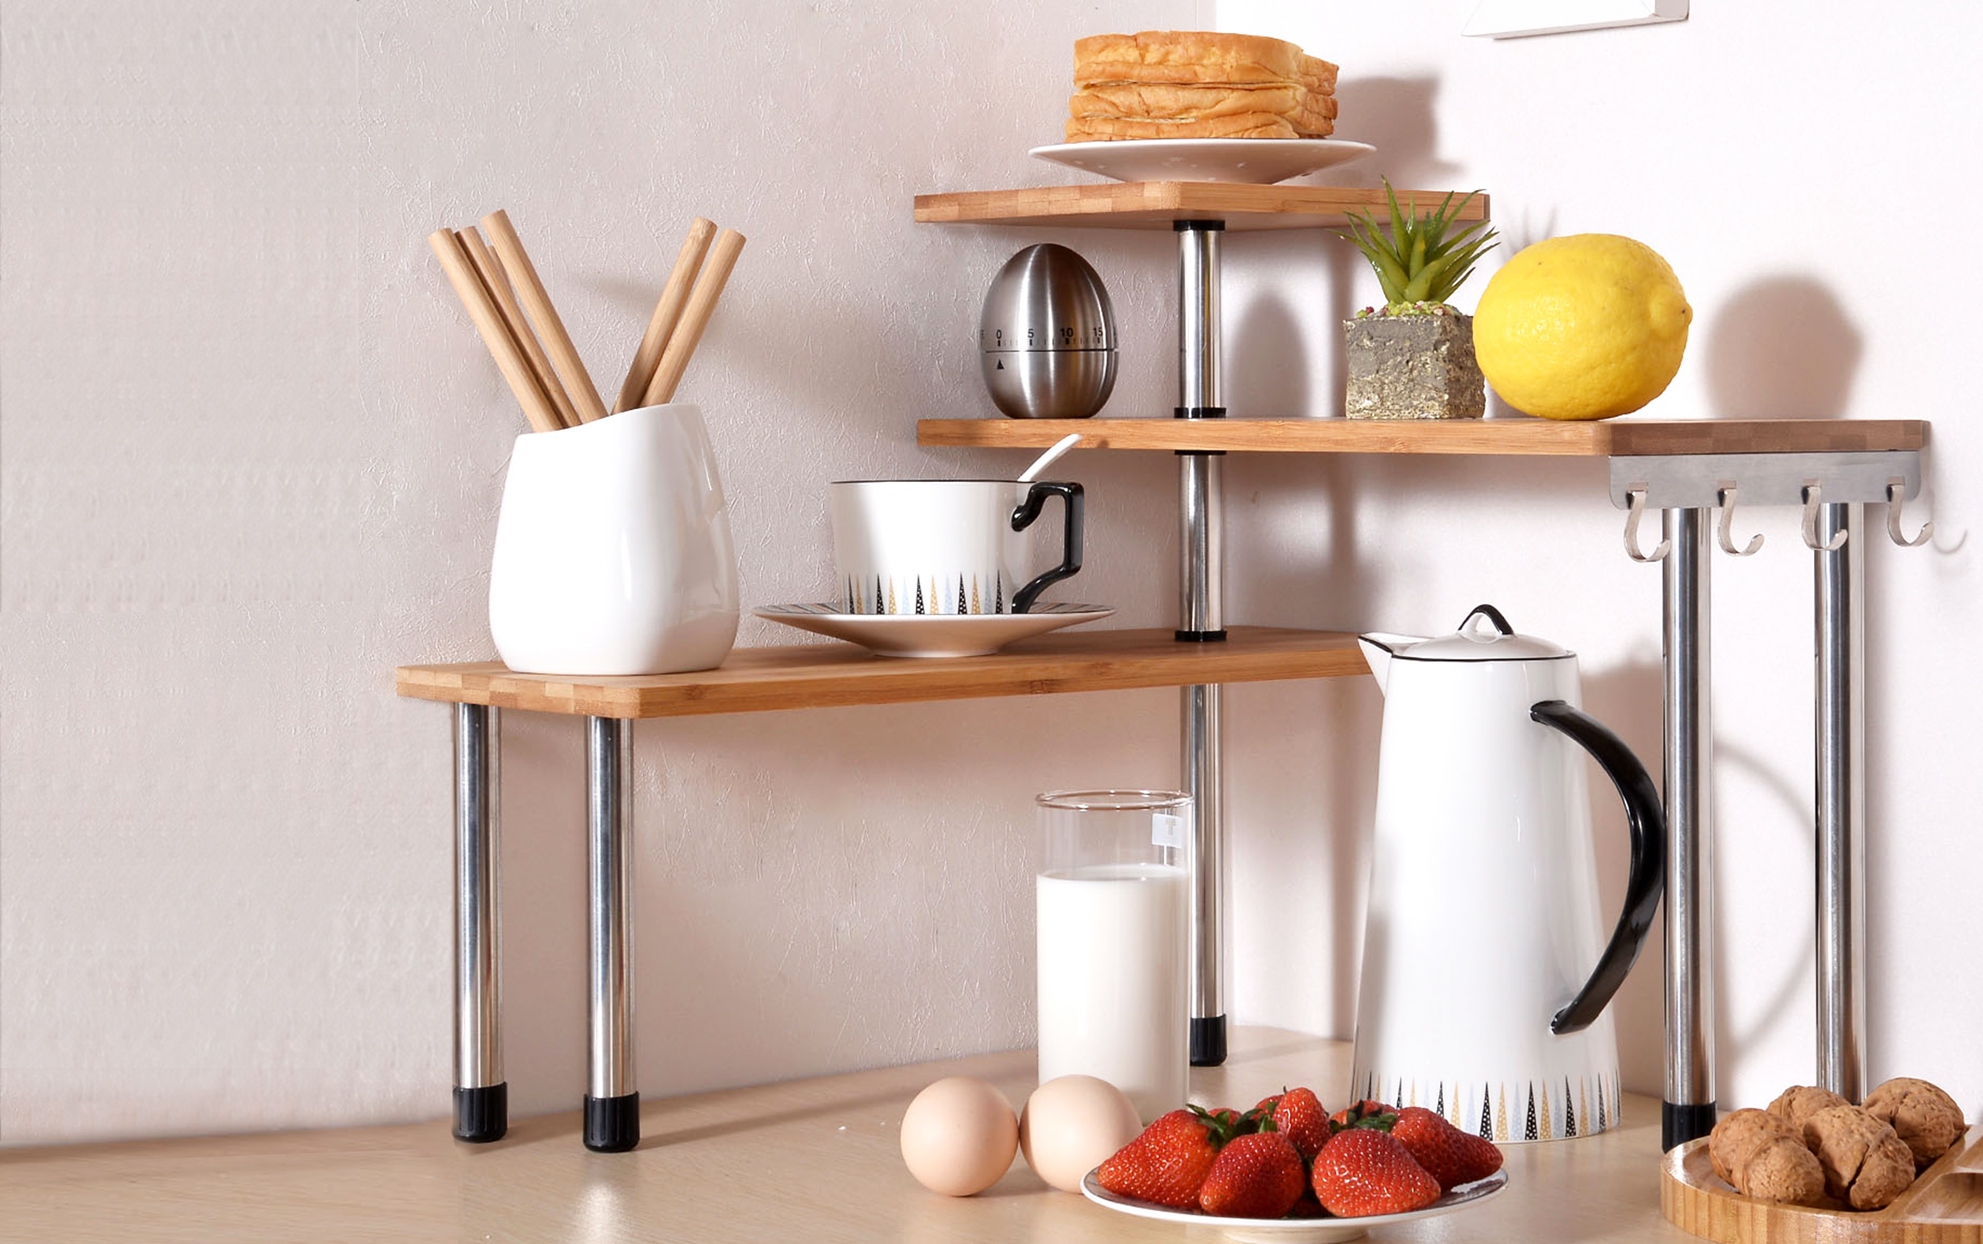 3 tier kitchen corner shelving unit made of bamboo and stainless steel with food and dishware